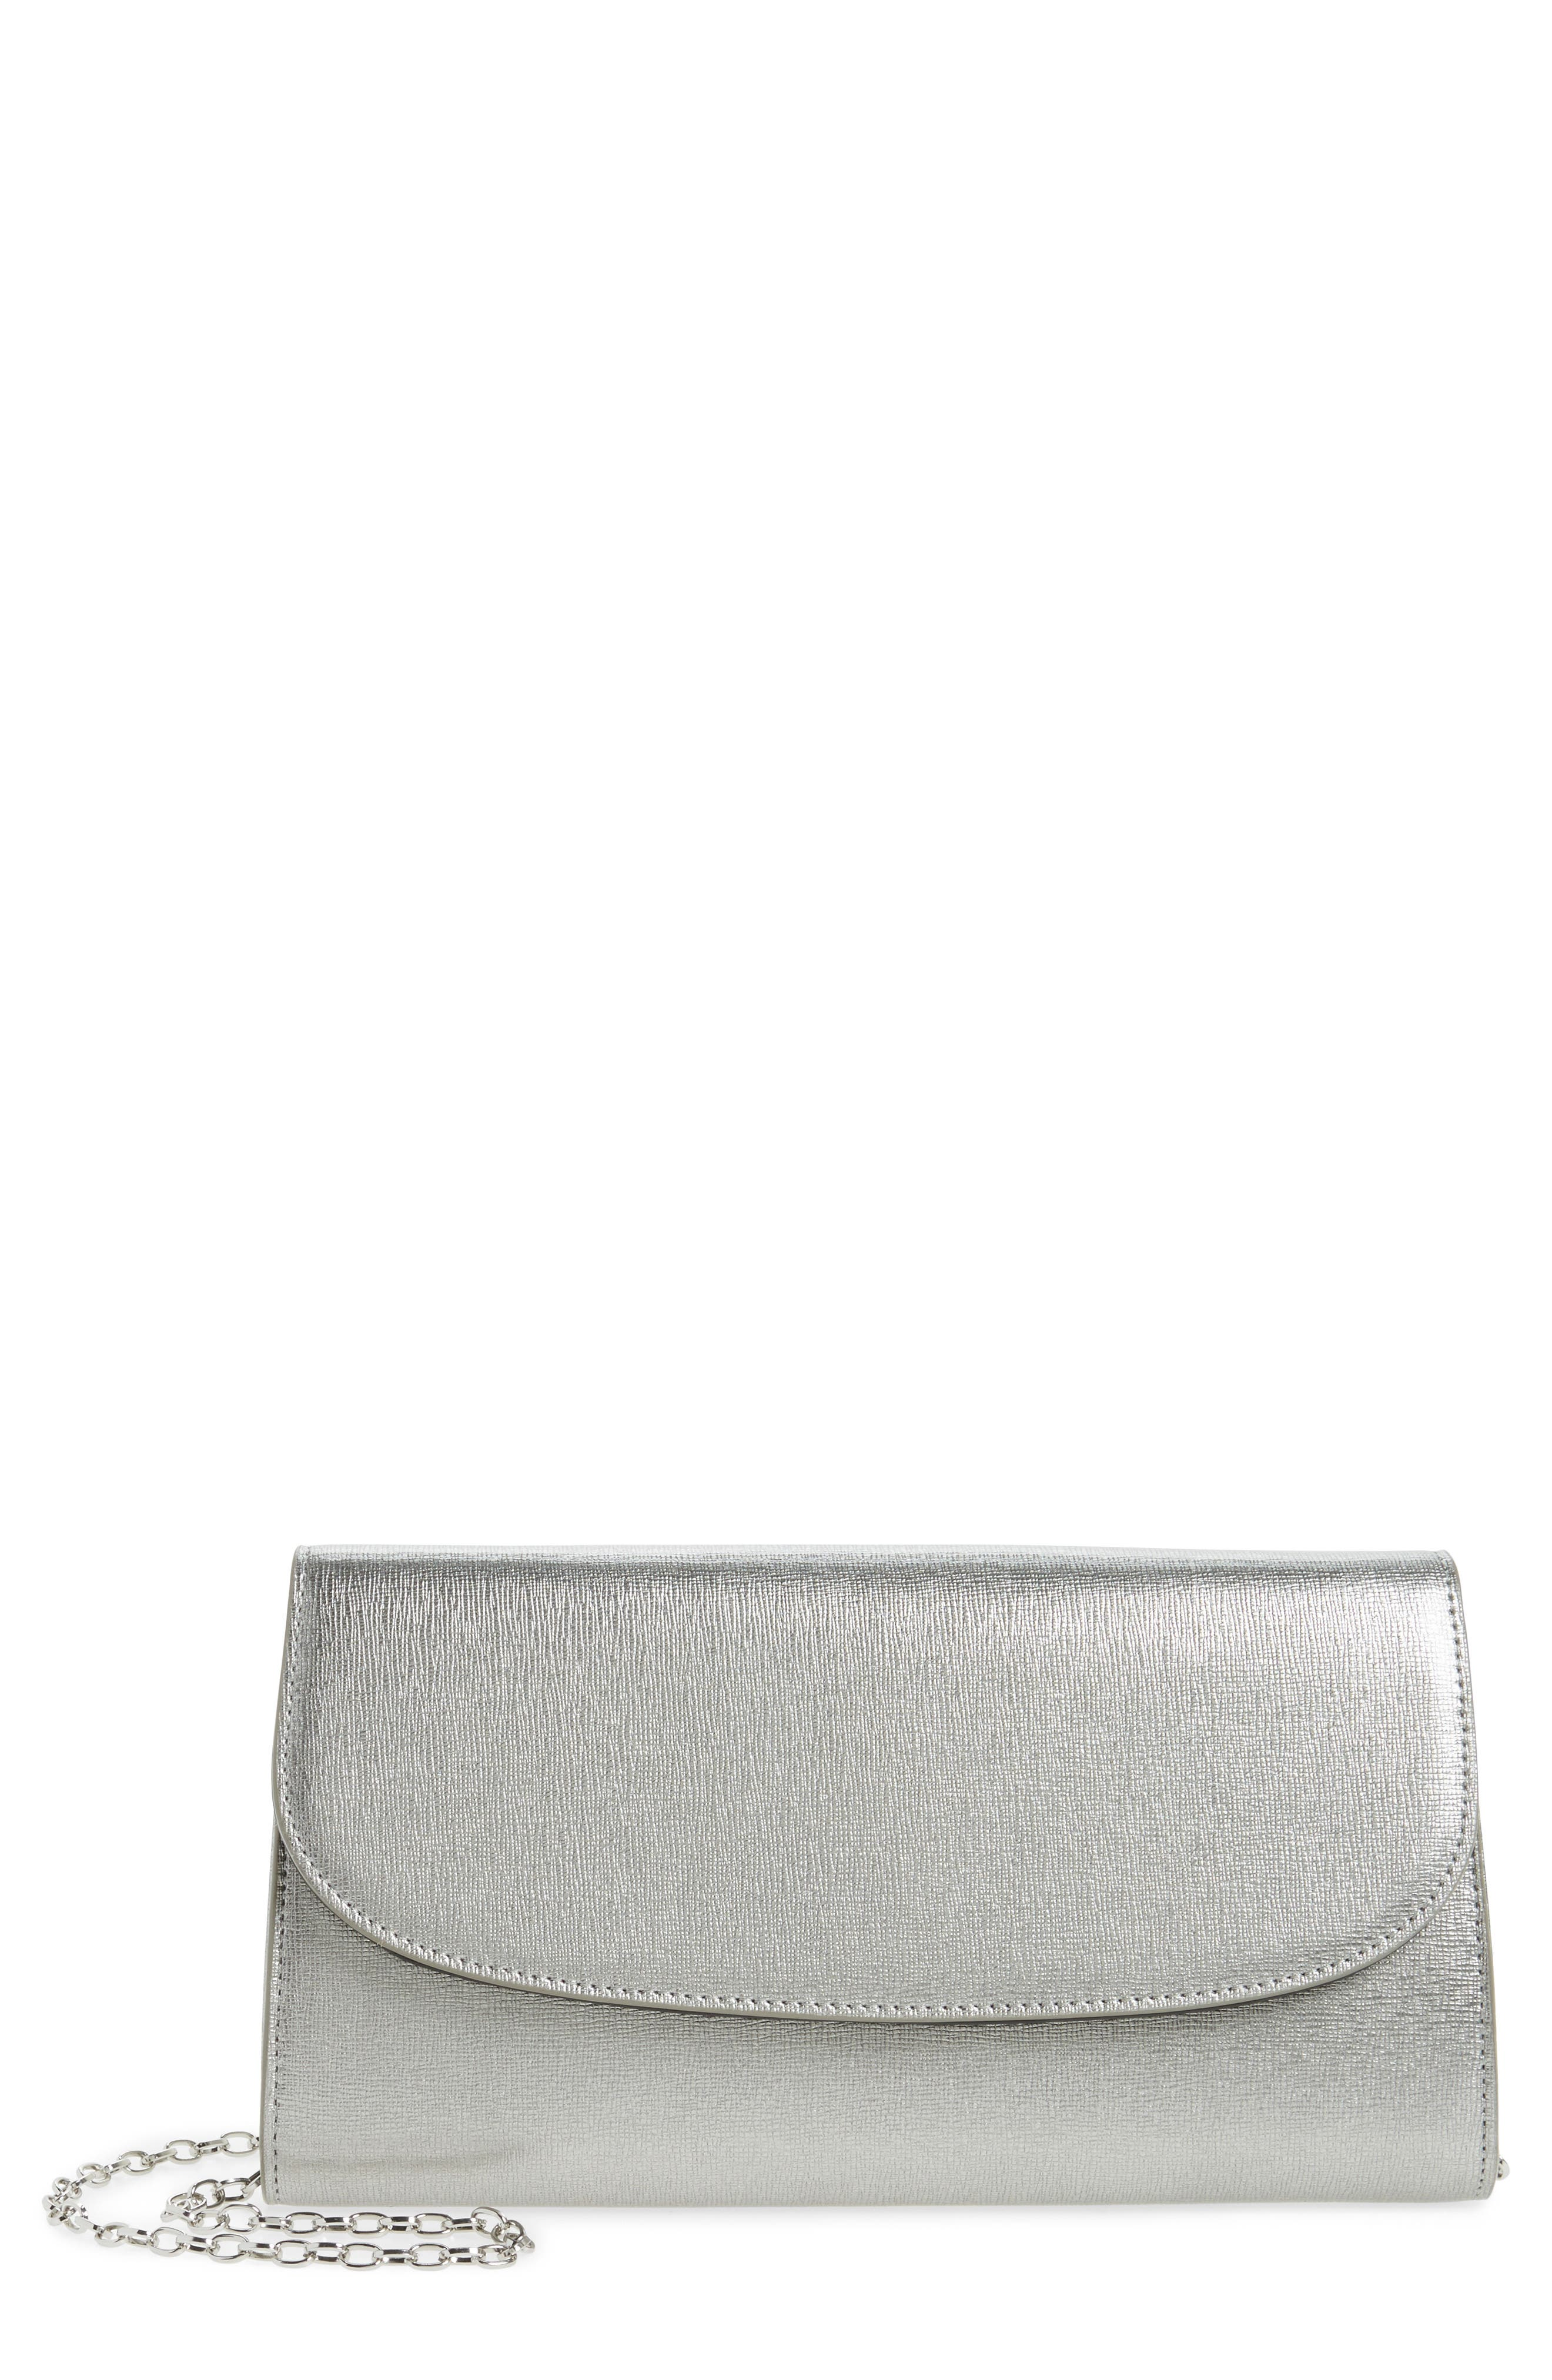 Alternate Image 1 Selected - Nordstrom Leather Clutch